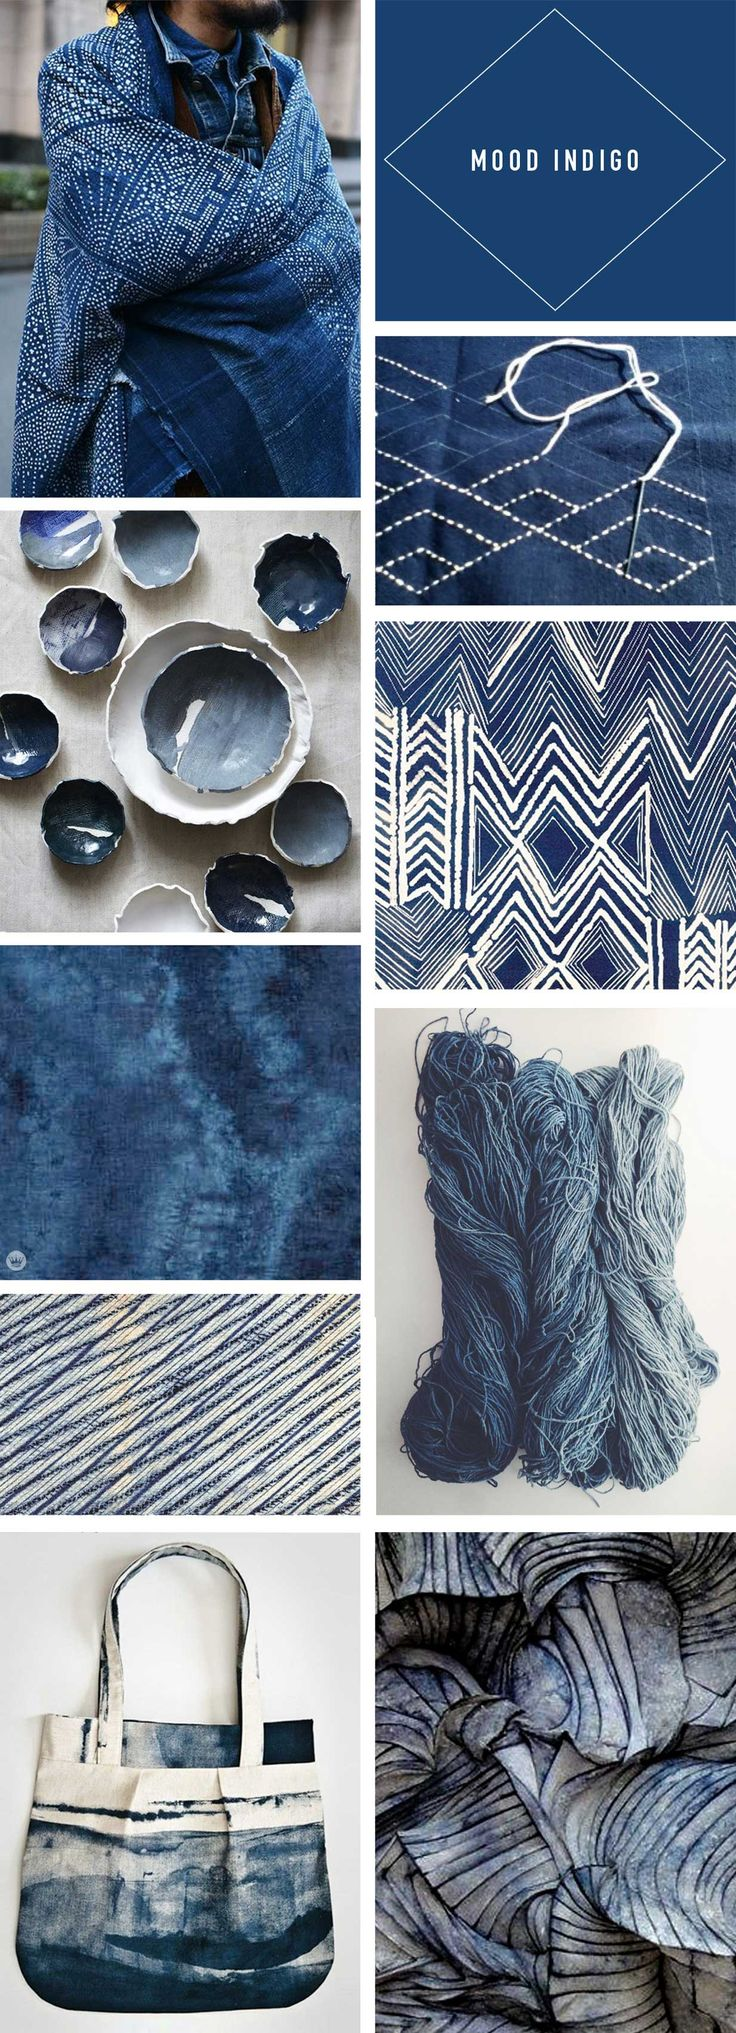 Trend Story: Going deep with indigo - Think.Make.Share.                                                                                                                                                      More